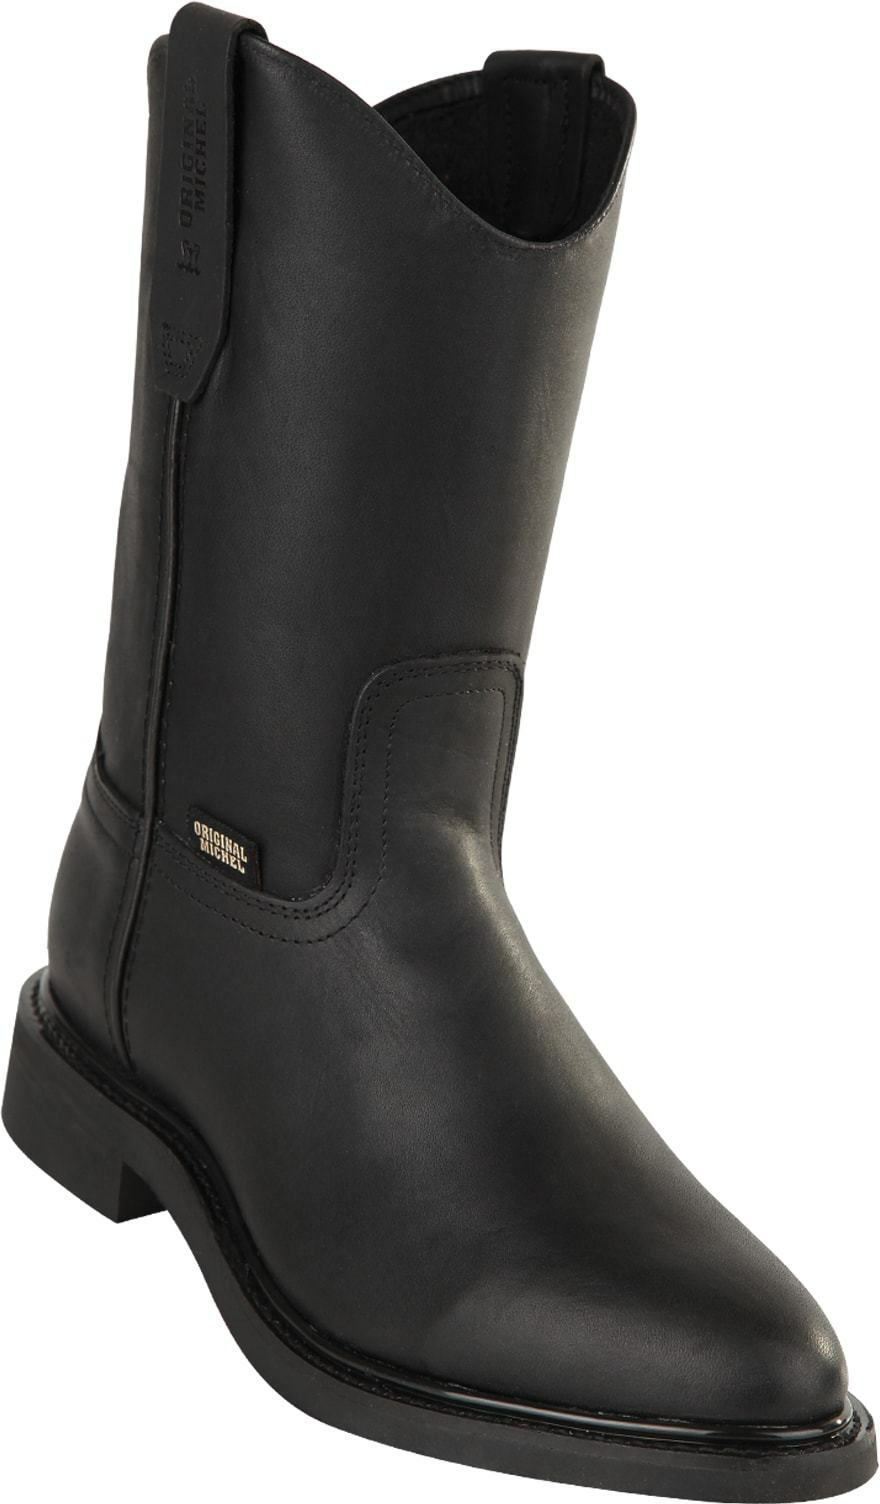 Men's Original Michel Genuine Leather Pull On Western Work Boots Rubber Sole